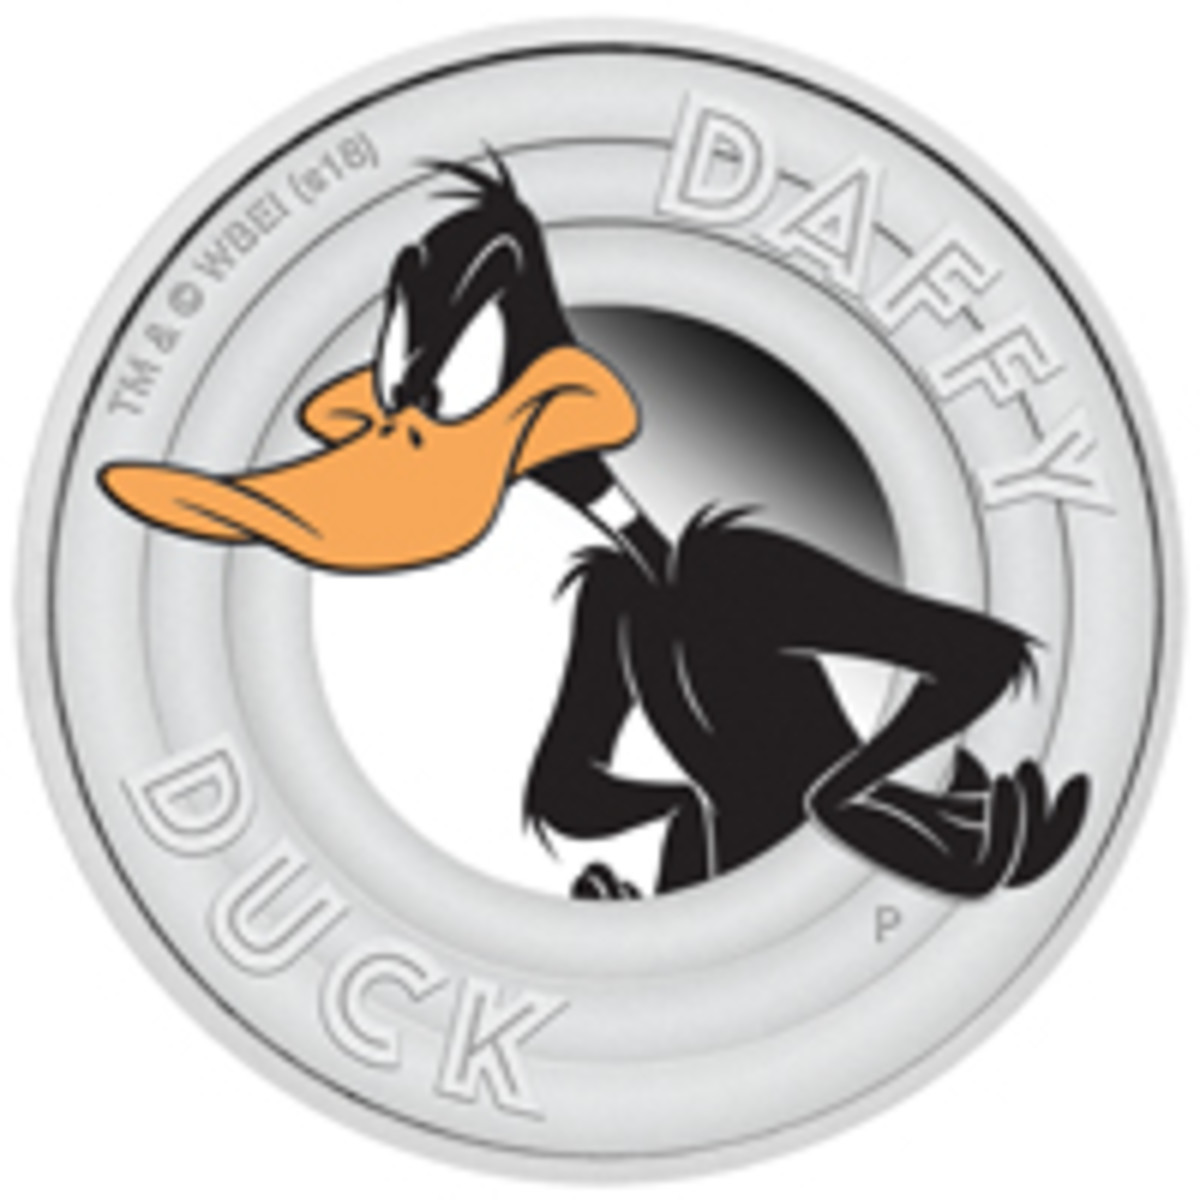 Daffy Duck features on a Tuvaluan silver 50 cents, the second coin in a new Looney Tunes Series. (Image courtesy The Perth Mint: LOONEY TUNES and all related characters and elements © & ™ Warner Bros. Entertainment Inc. WB SHIELD: © & ™ WBEI (s18))